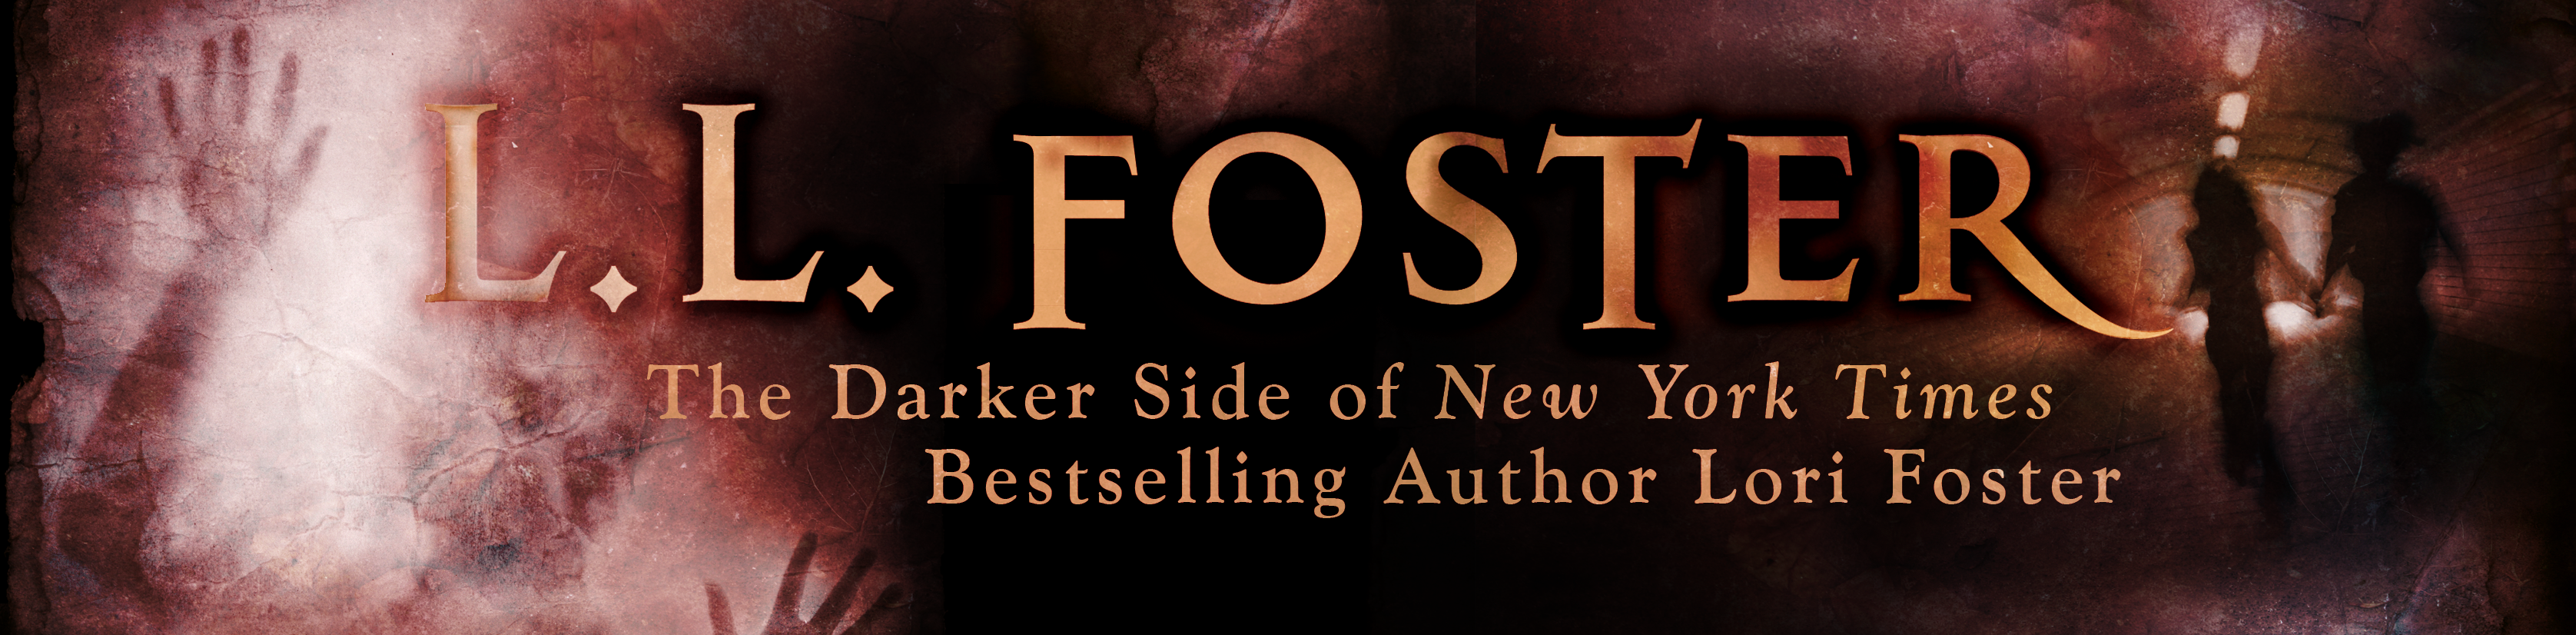 Lori Foster writing as LL Foster